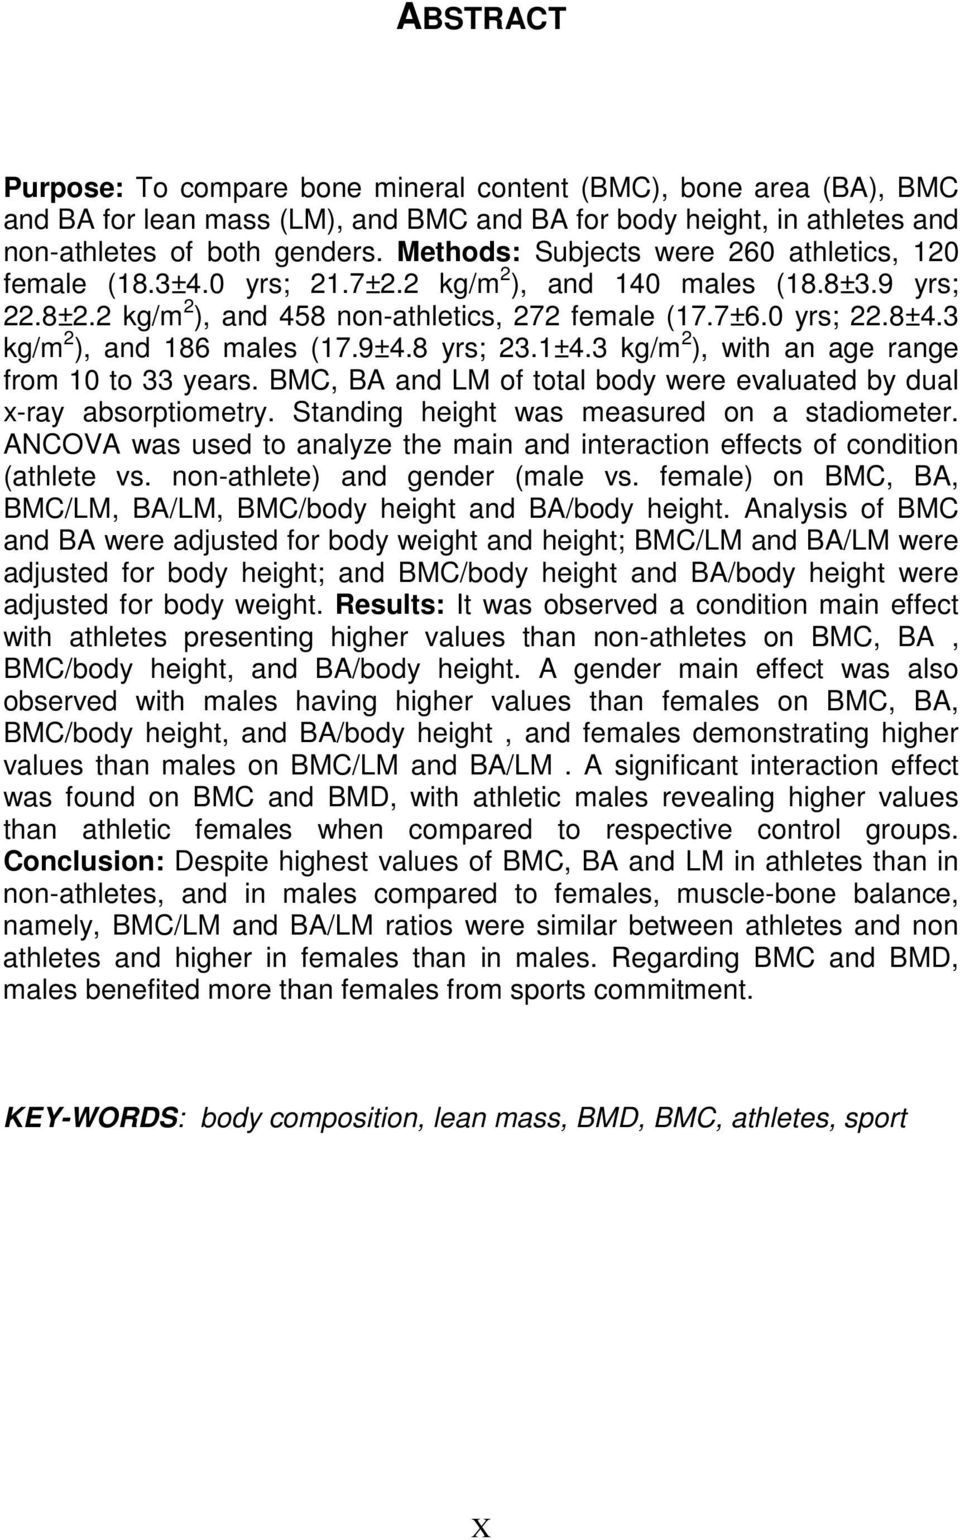 3 kg/m 2 ), and 186 males (17.9±4.8 yrs; 23.1±4.3 kg/m 2 ), with an age range from 10 to 33 years. BMC, BA and LM of total body were evaluated by dual x-ray absorptiometry.